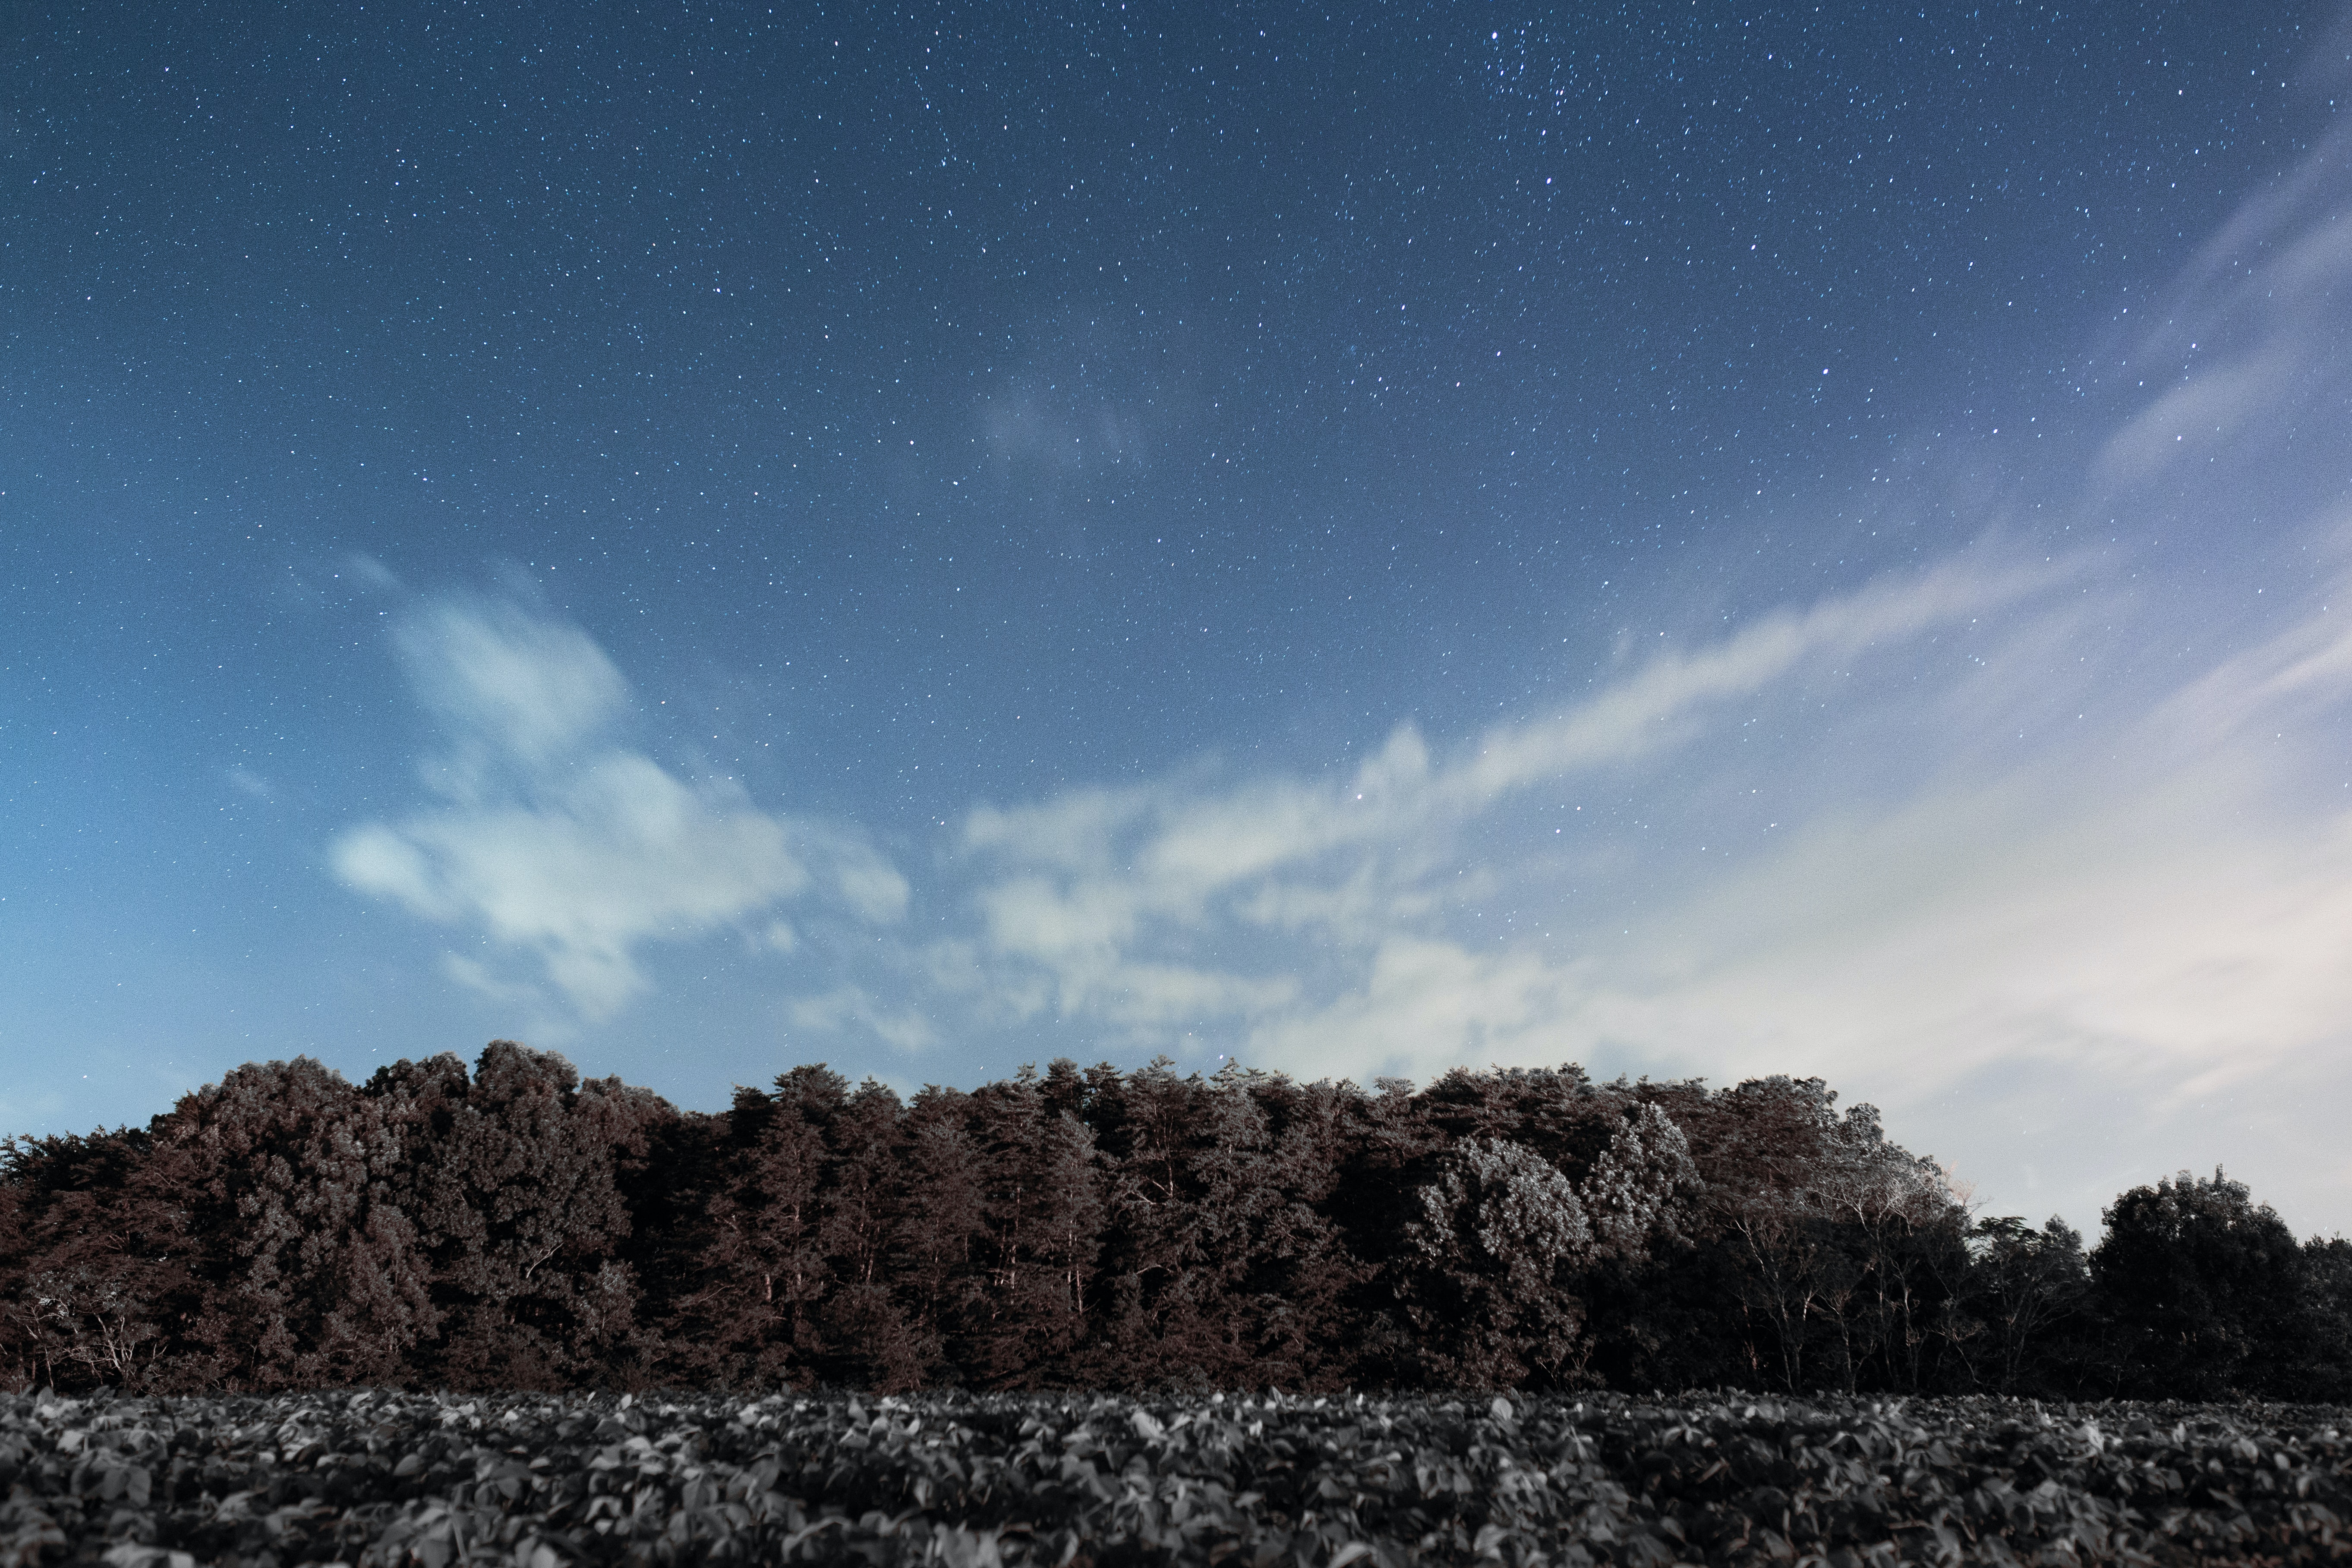 Clouds on a starry sky over a treeline in Hanging Rock State Park